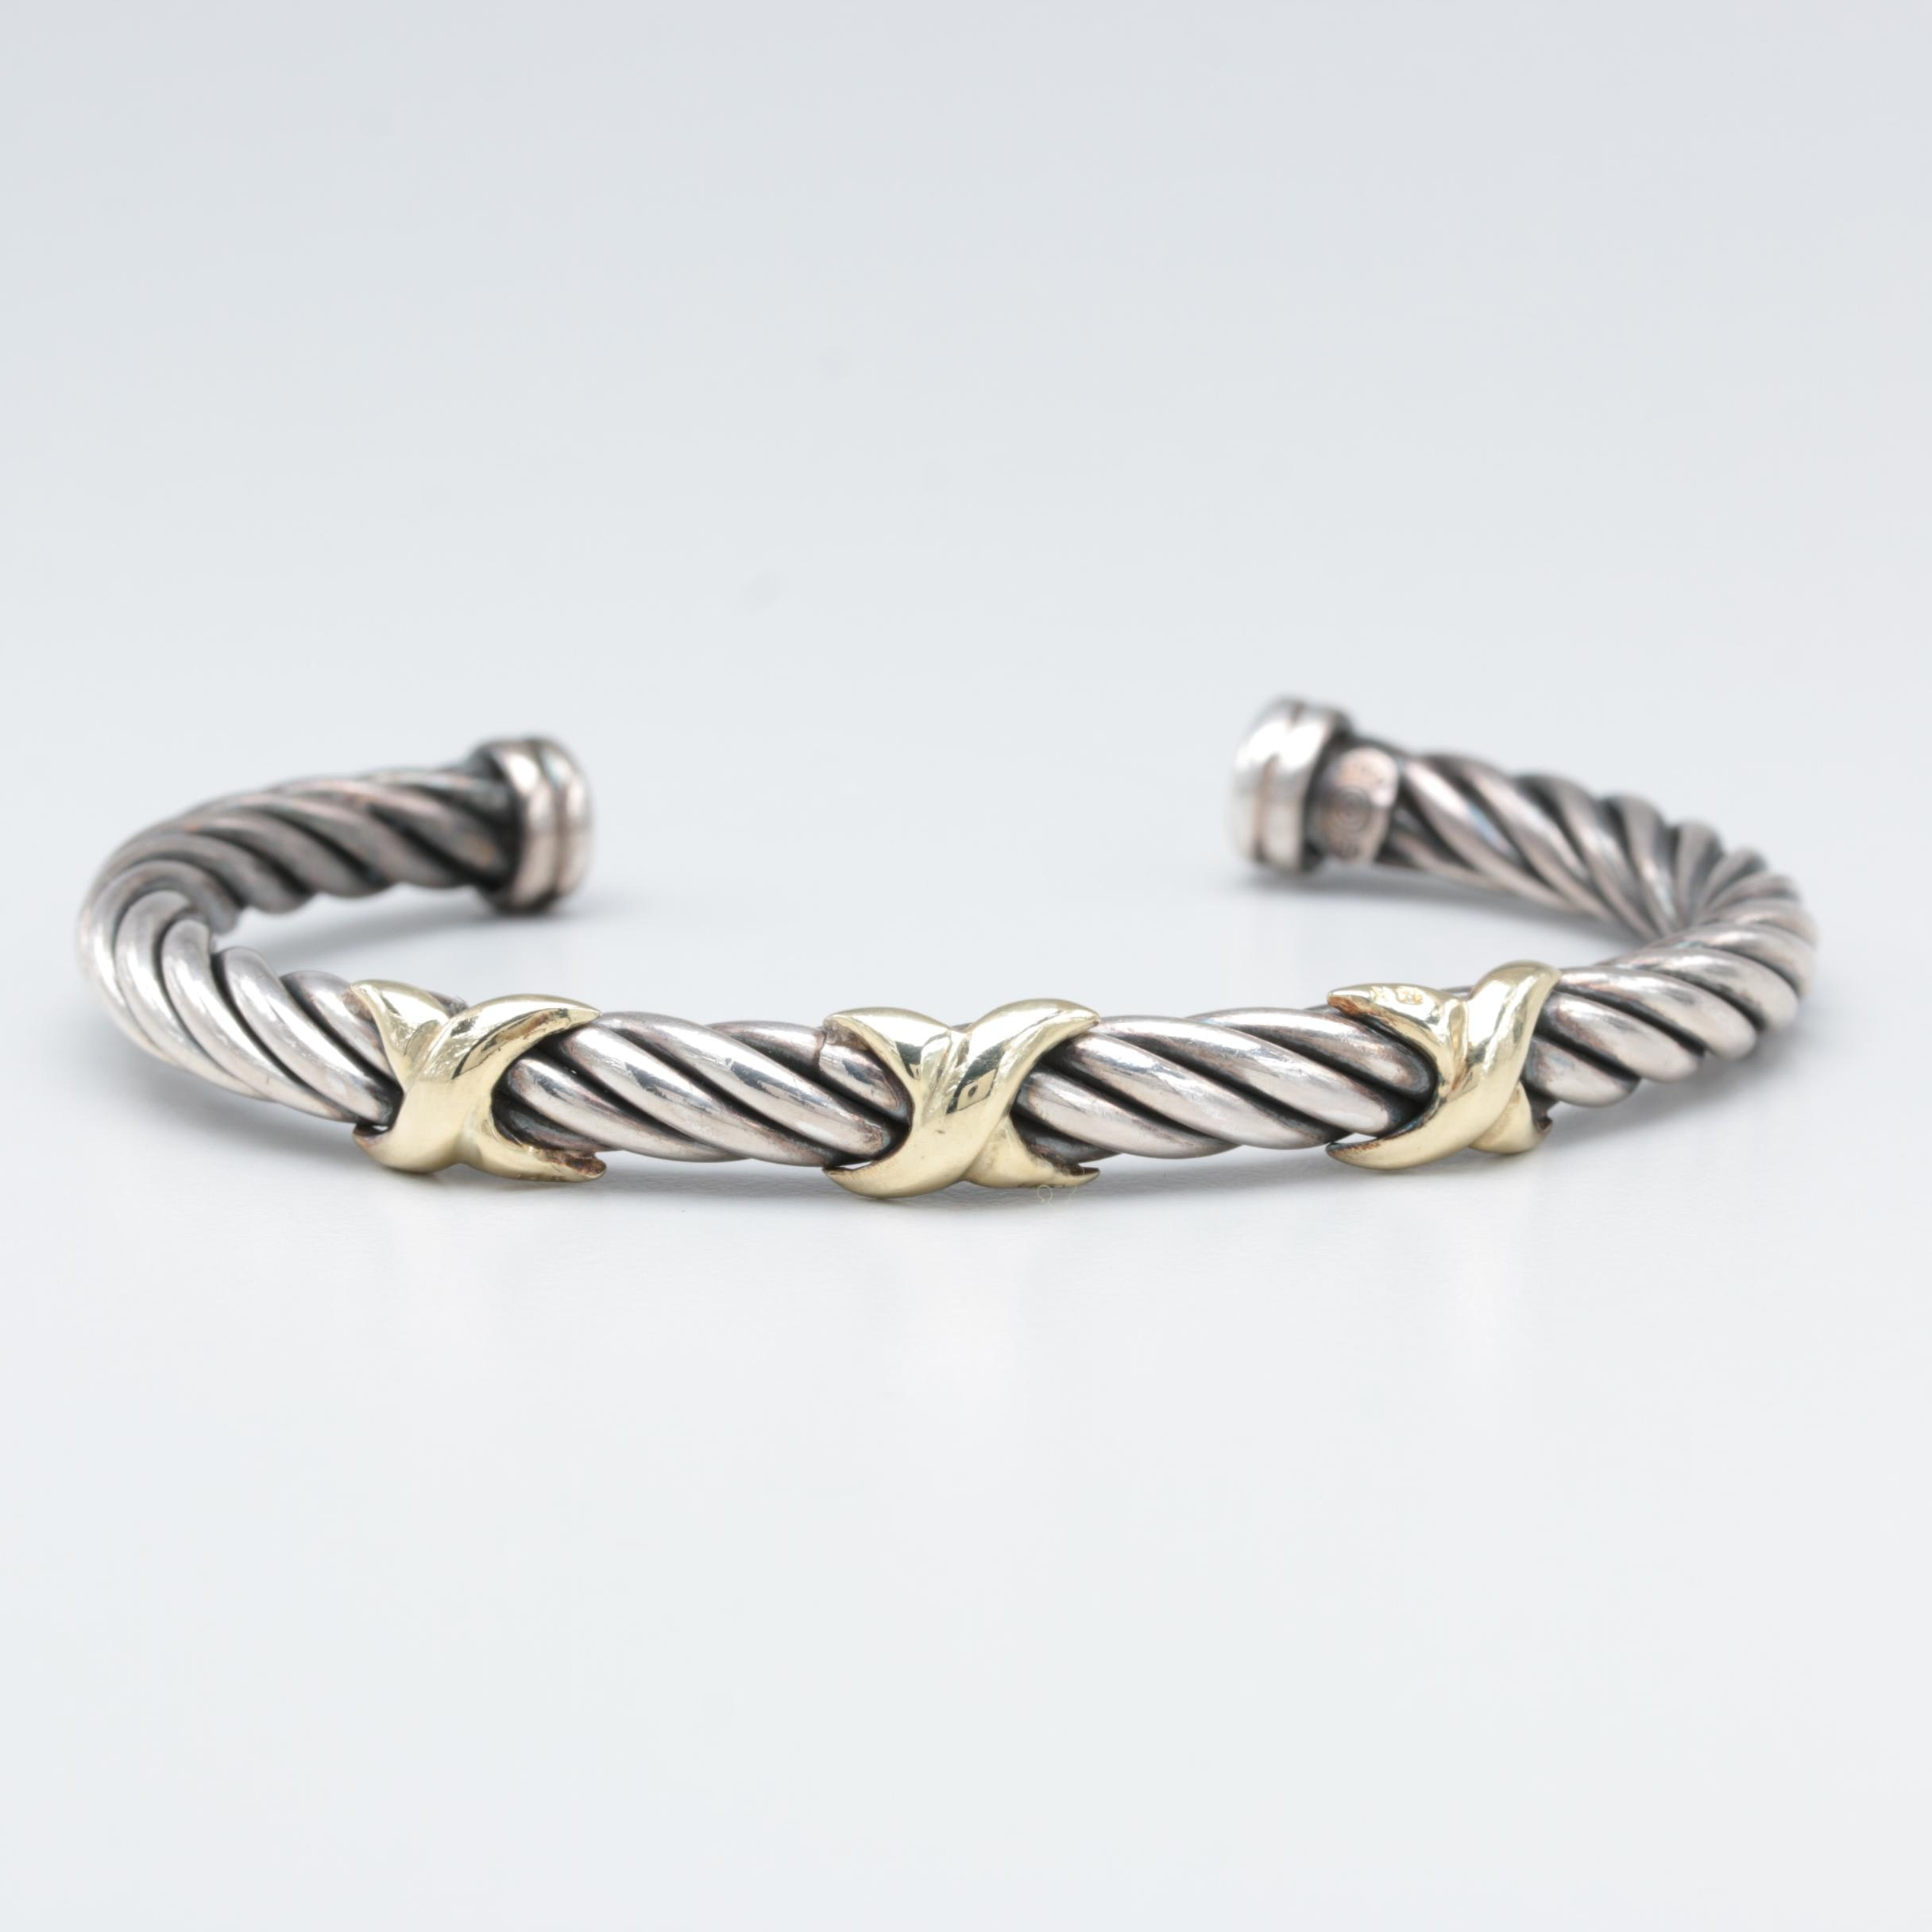 Sterling Silver Cuff Bracelet with 14K Yellow Gold Accents